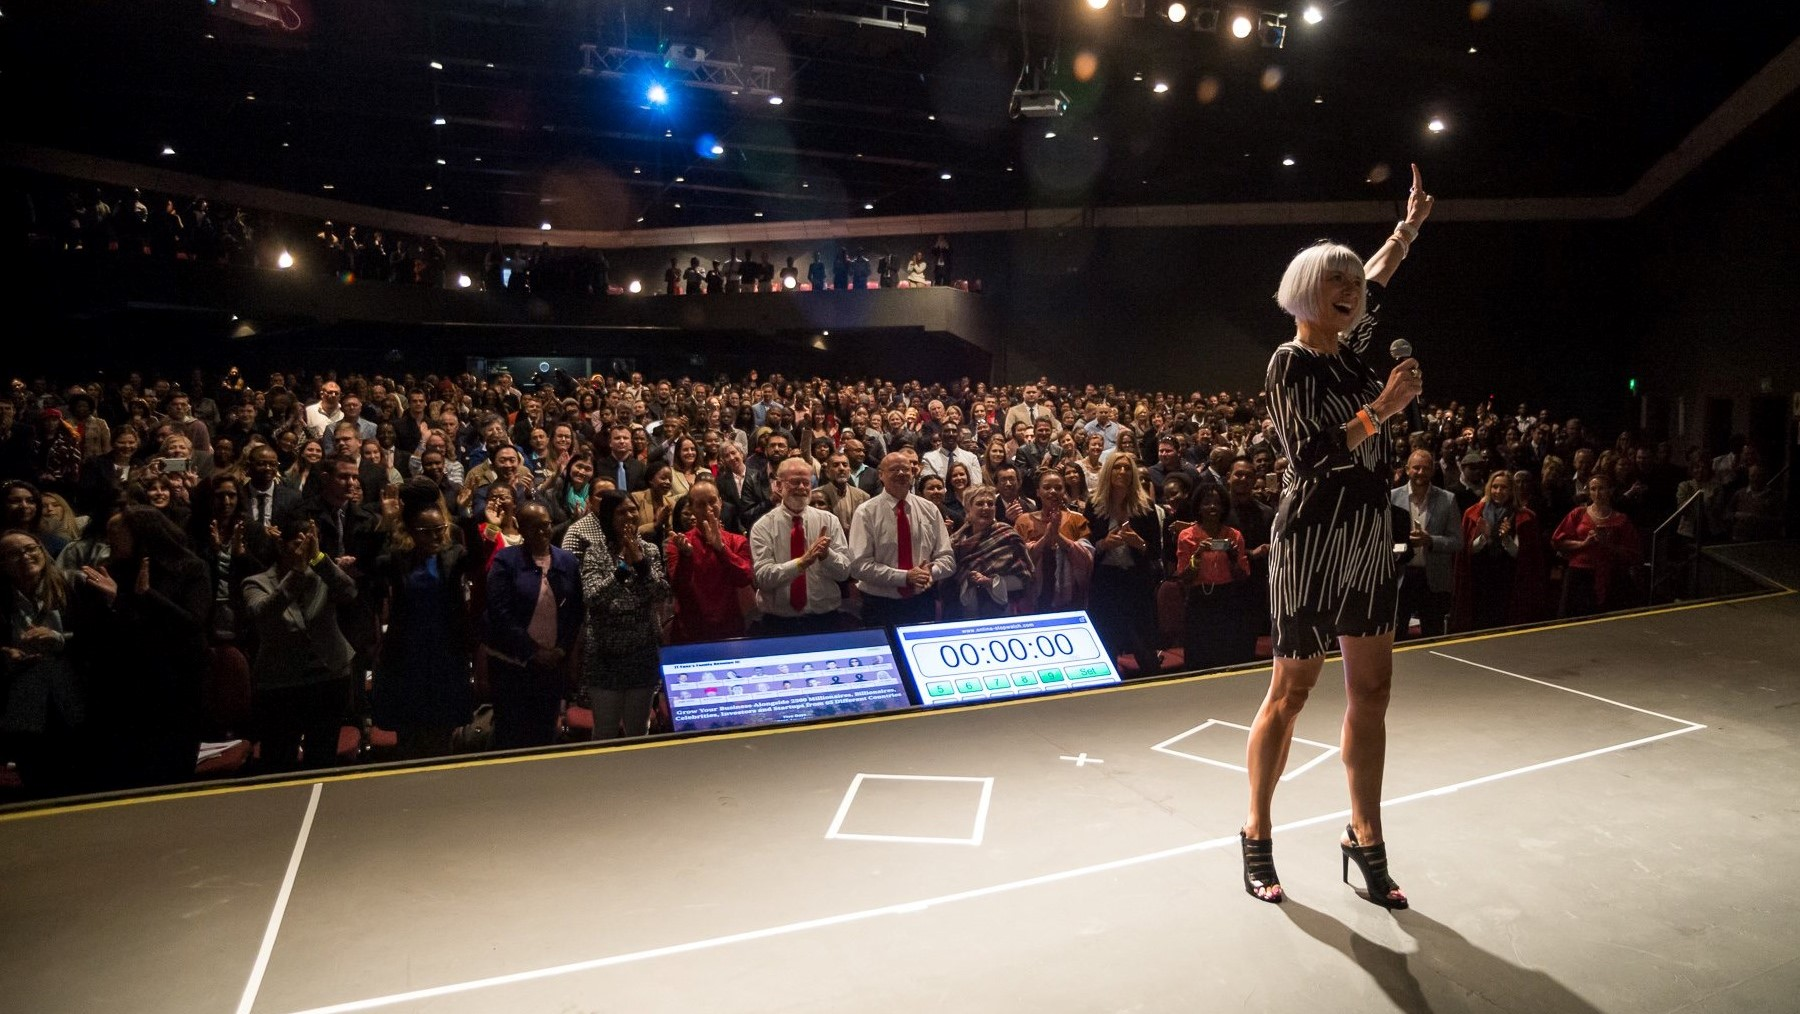 Stéphanie Rottet on stage at JT Foxx's business event in Johannesburg, South Africa in front of an audience of 1800 people. August 2017